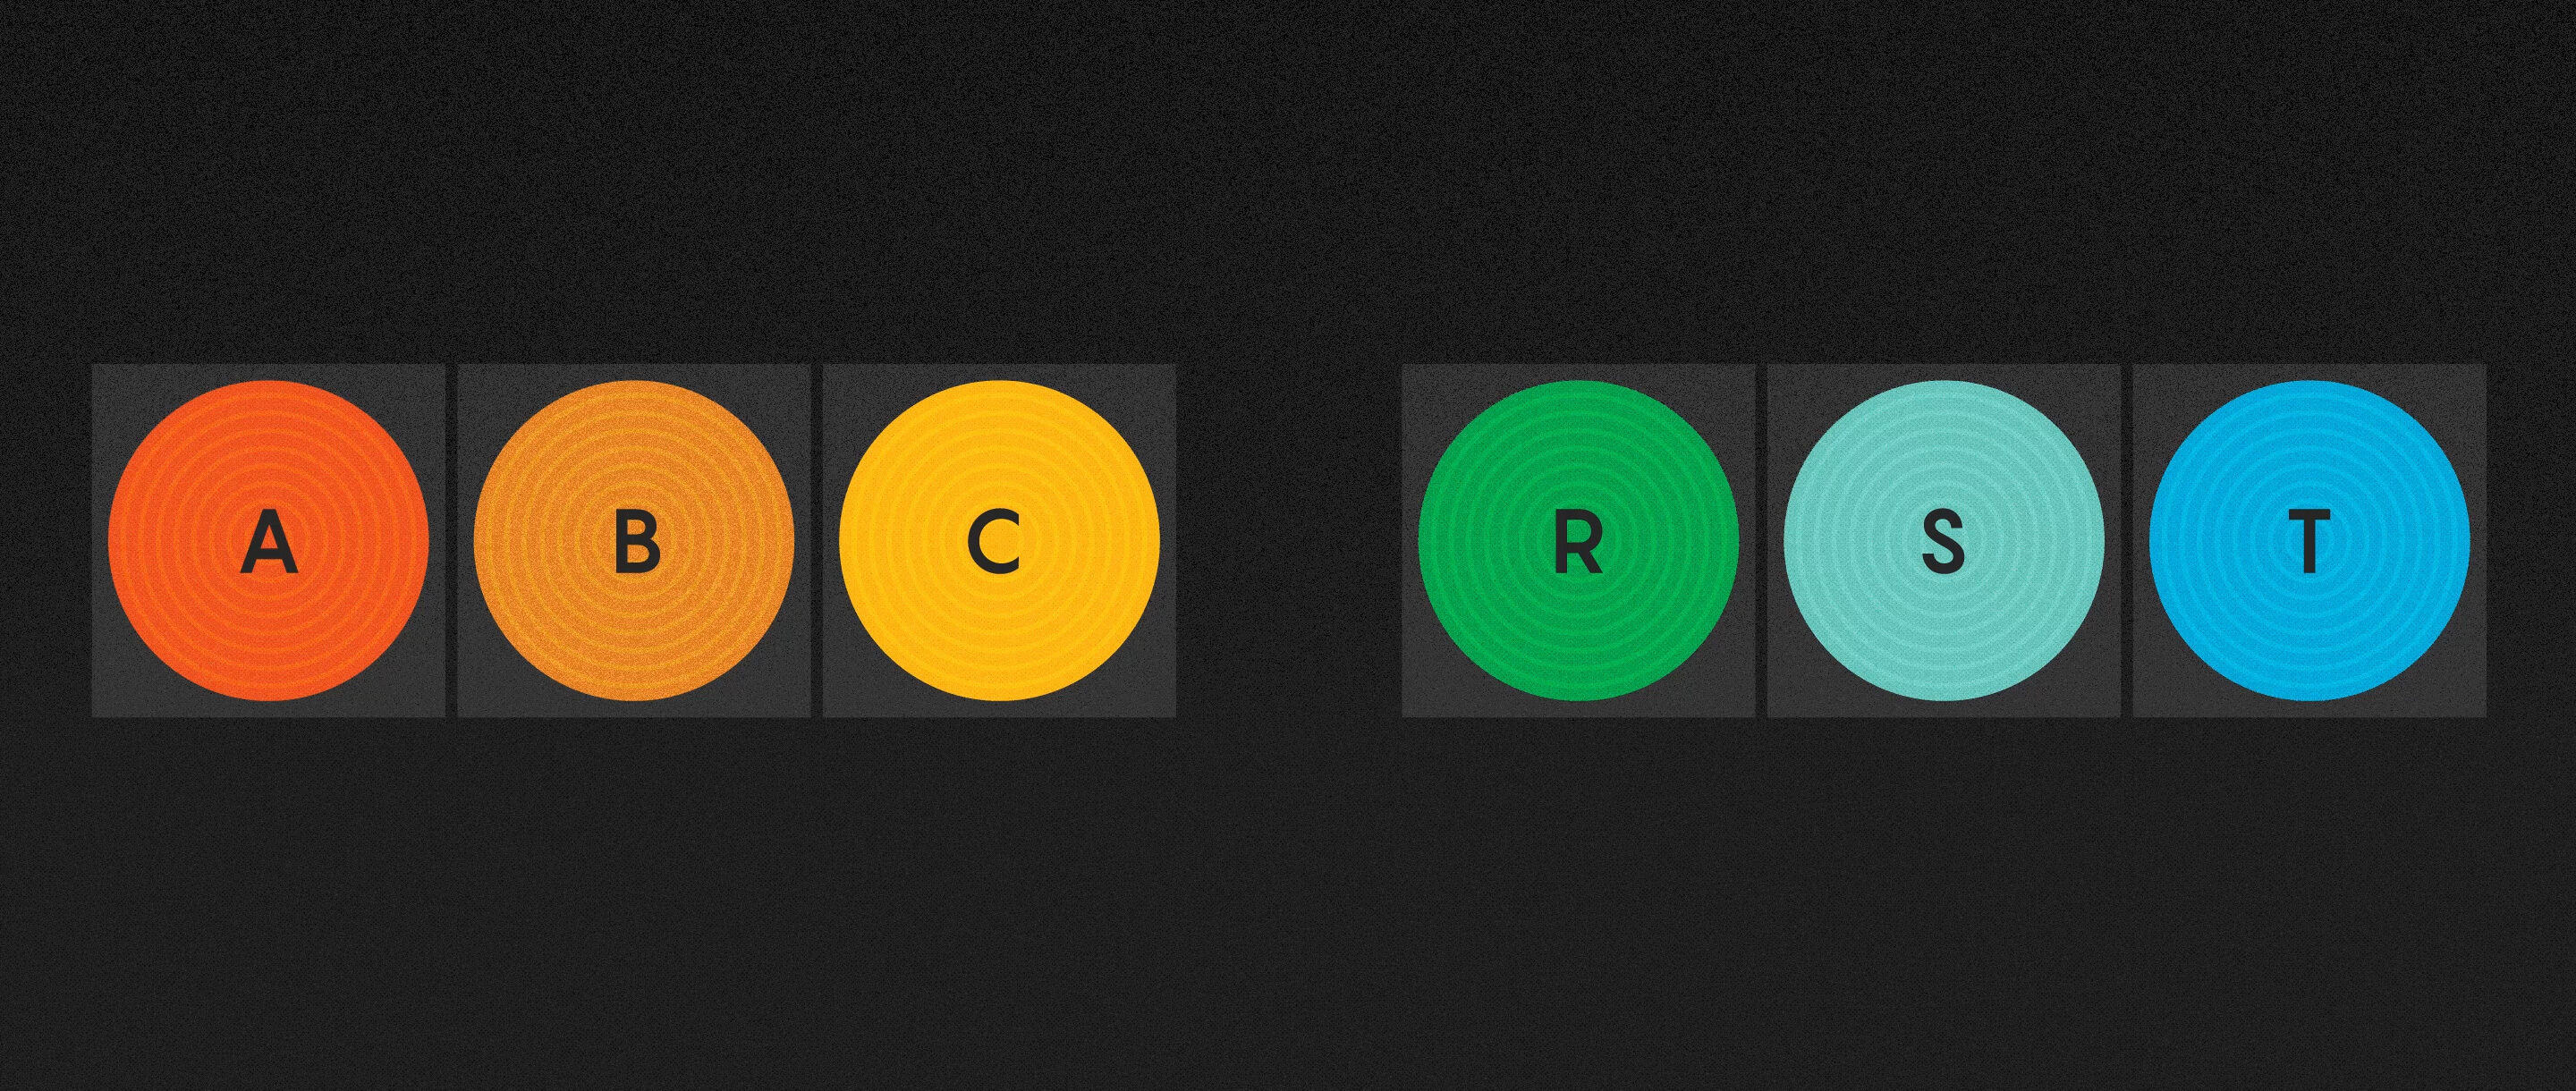 Animated illustration showing multiple permutations of colorful letters